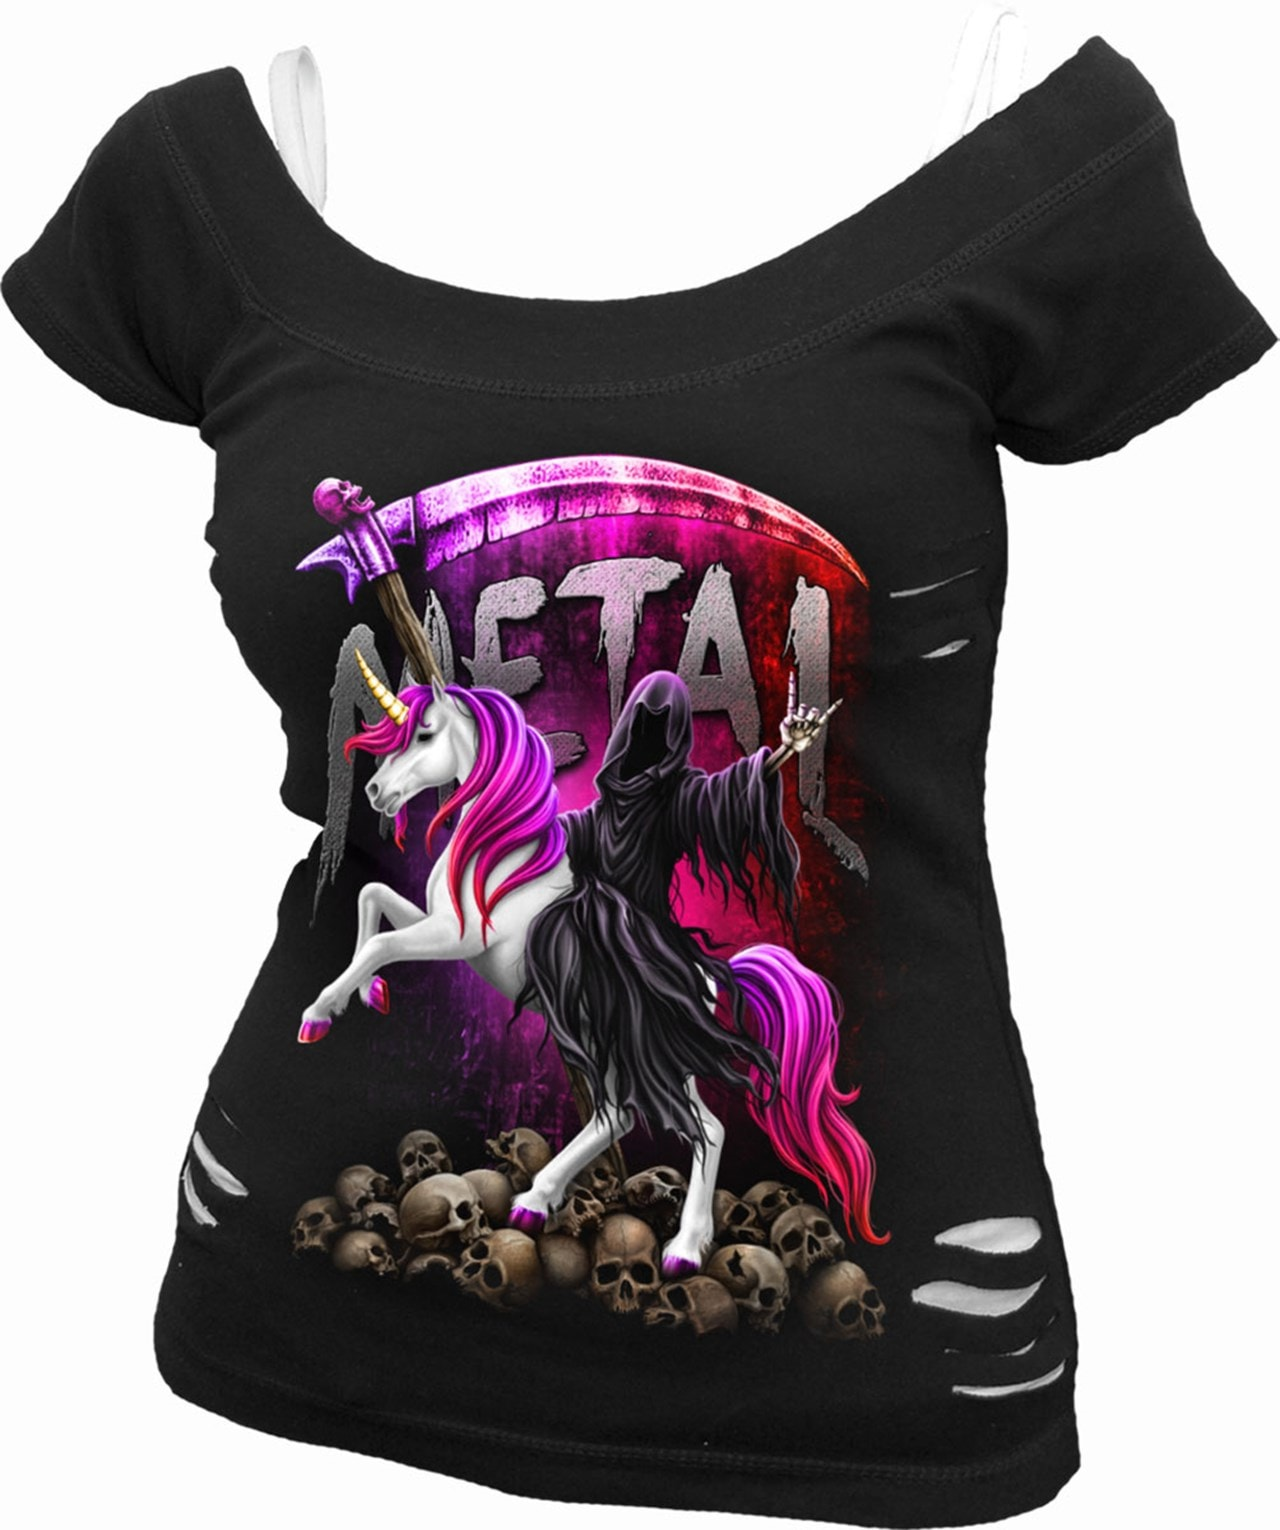 Spiral: Metallicorn: 2-In-1 Ripped Ladies Fit Tee (Extra Large) - 1